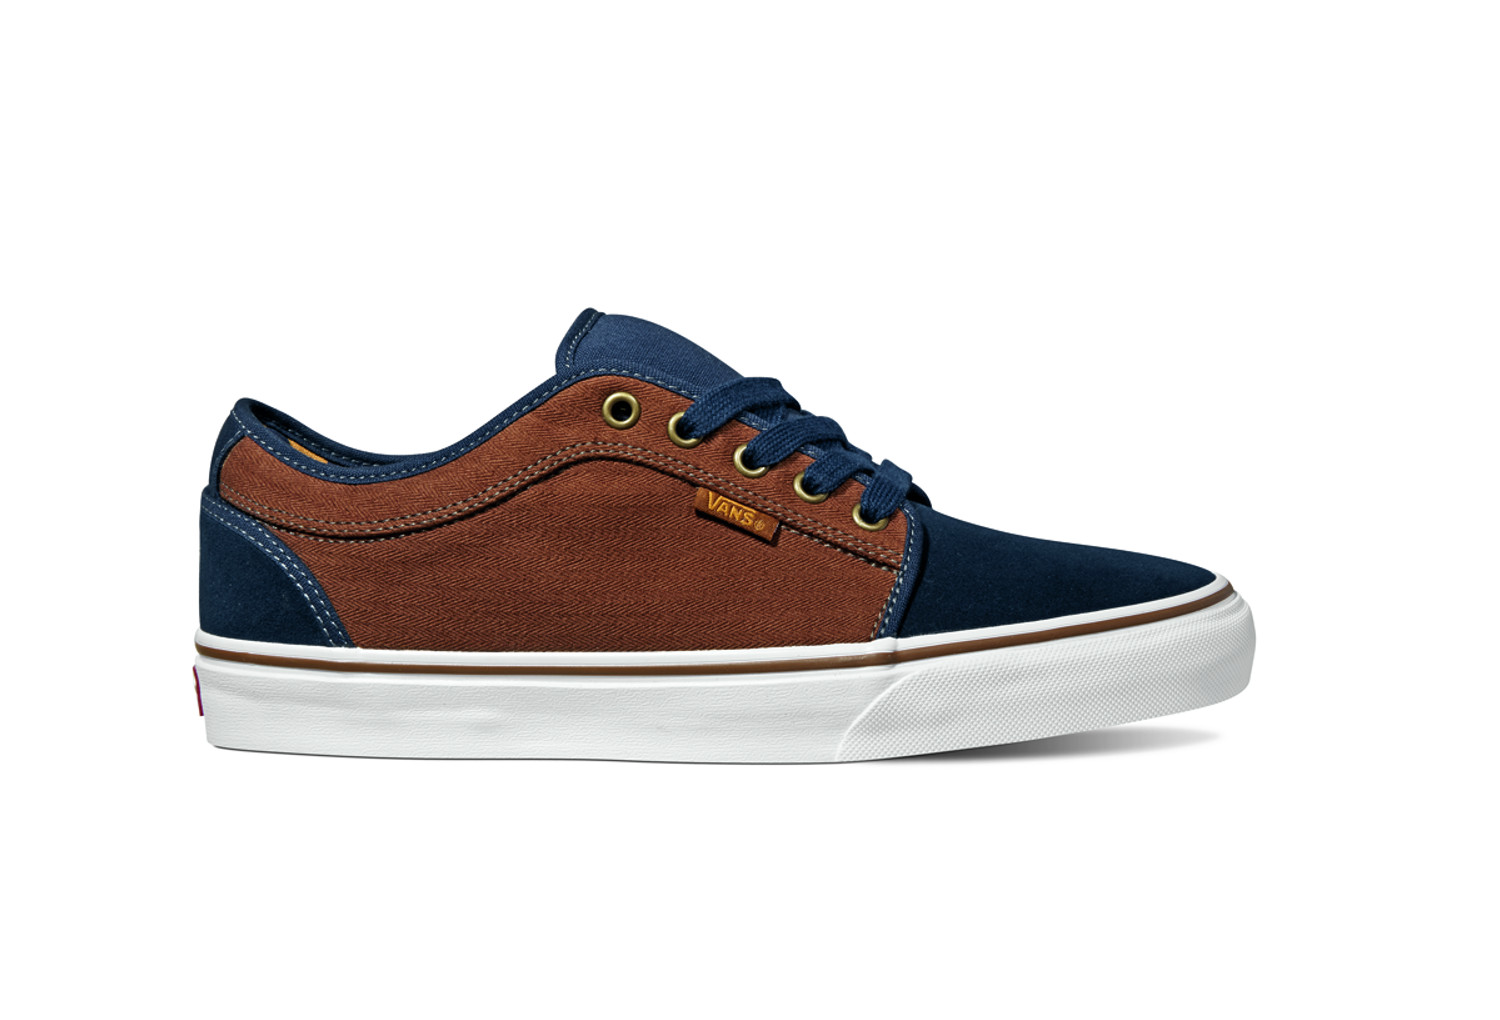 vans 2016 shoes chukka low blue brown alltrickscom